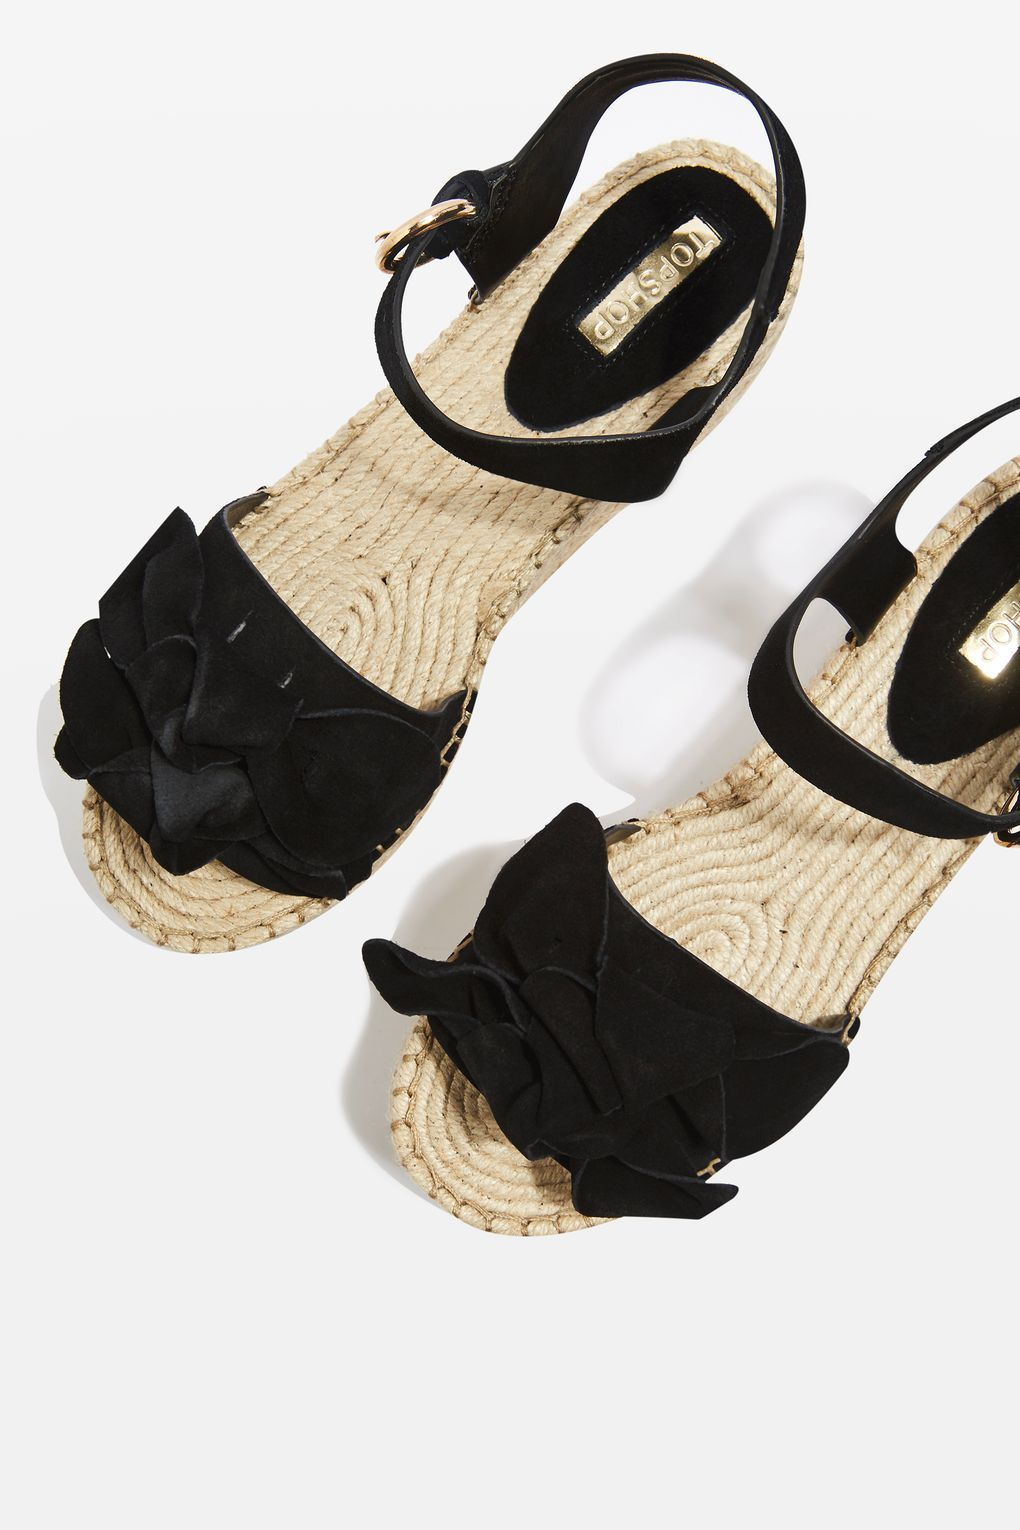 f86c220e37b DAY 2 Topshop WENDY Bow Wedge Espadrilles - Black (This shoes is back again